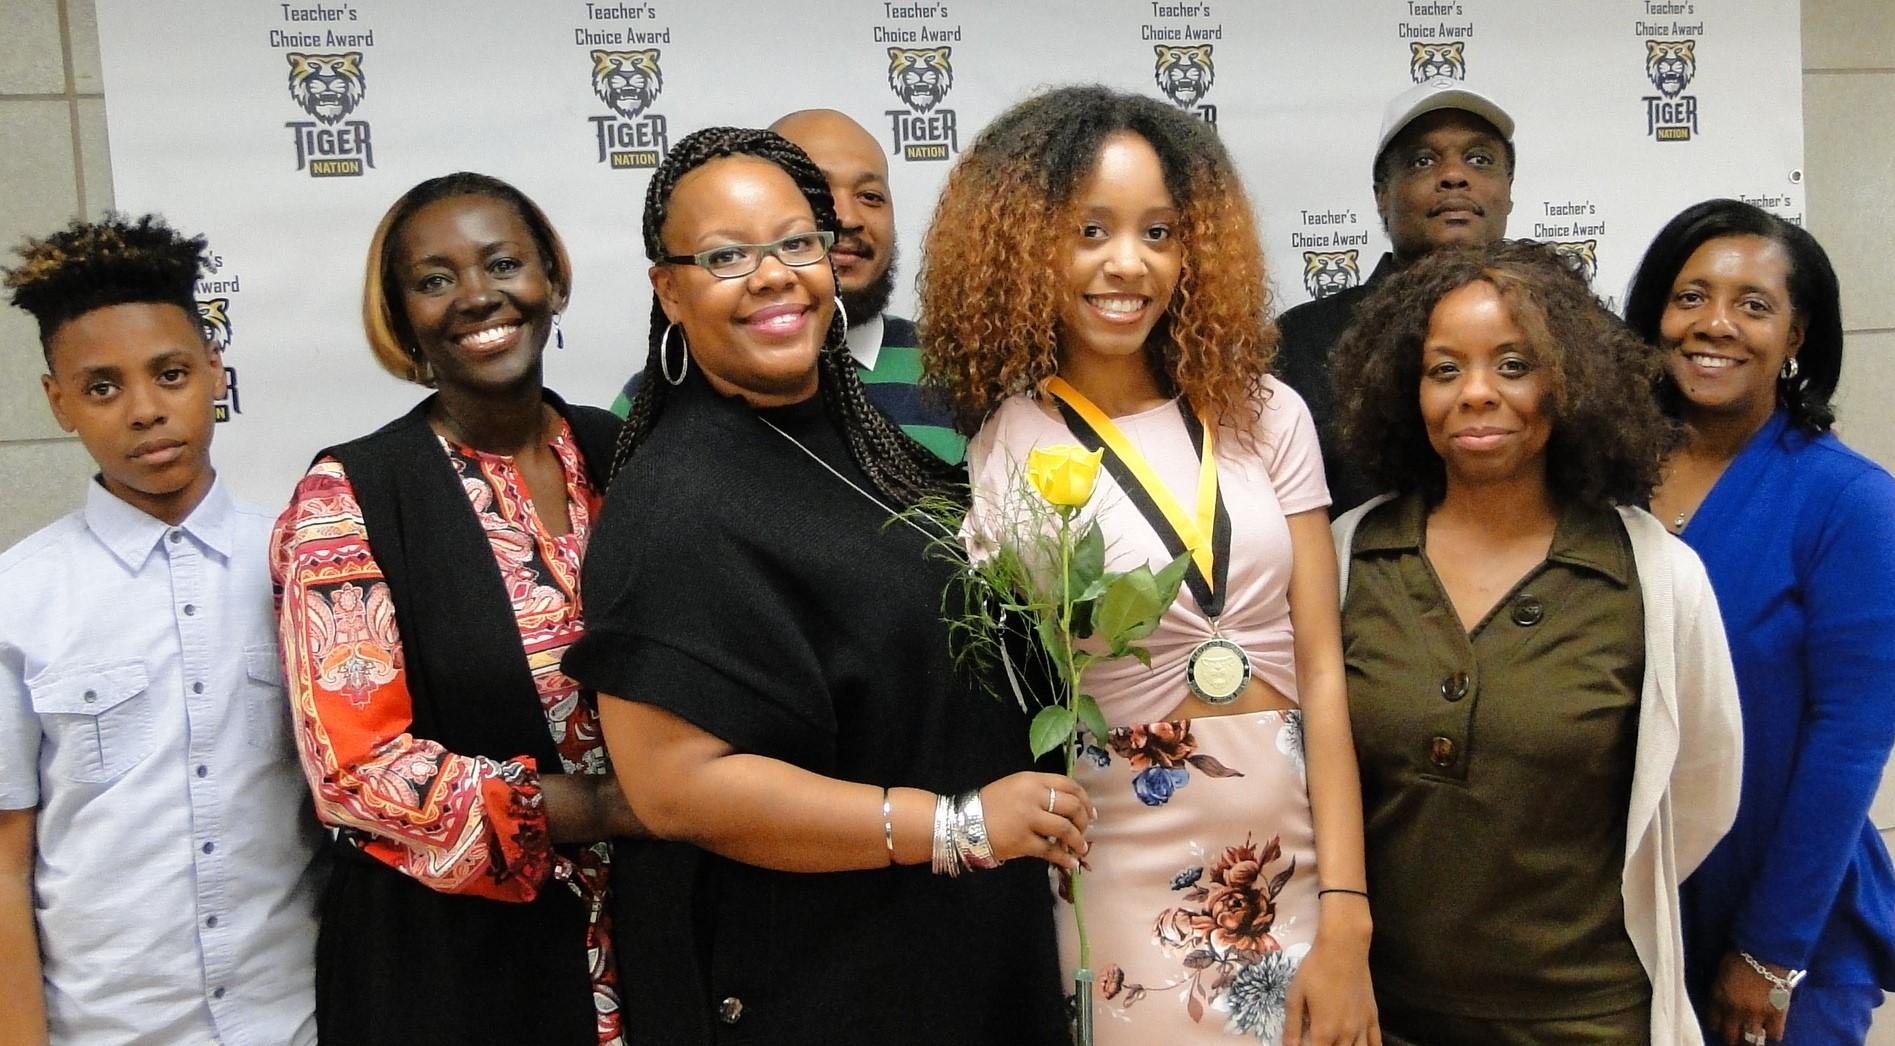 Sade Foster recognized by Ms. Adeyemon